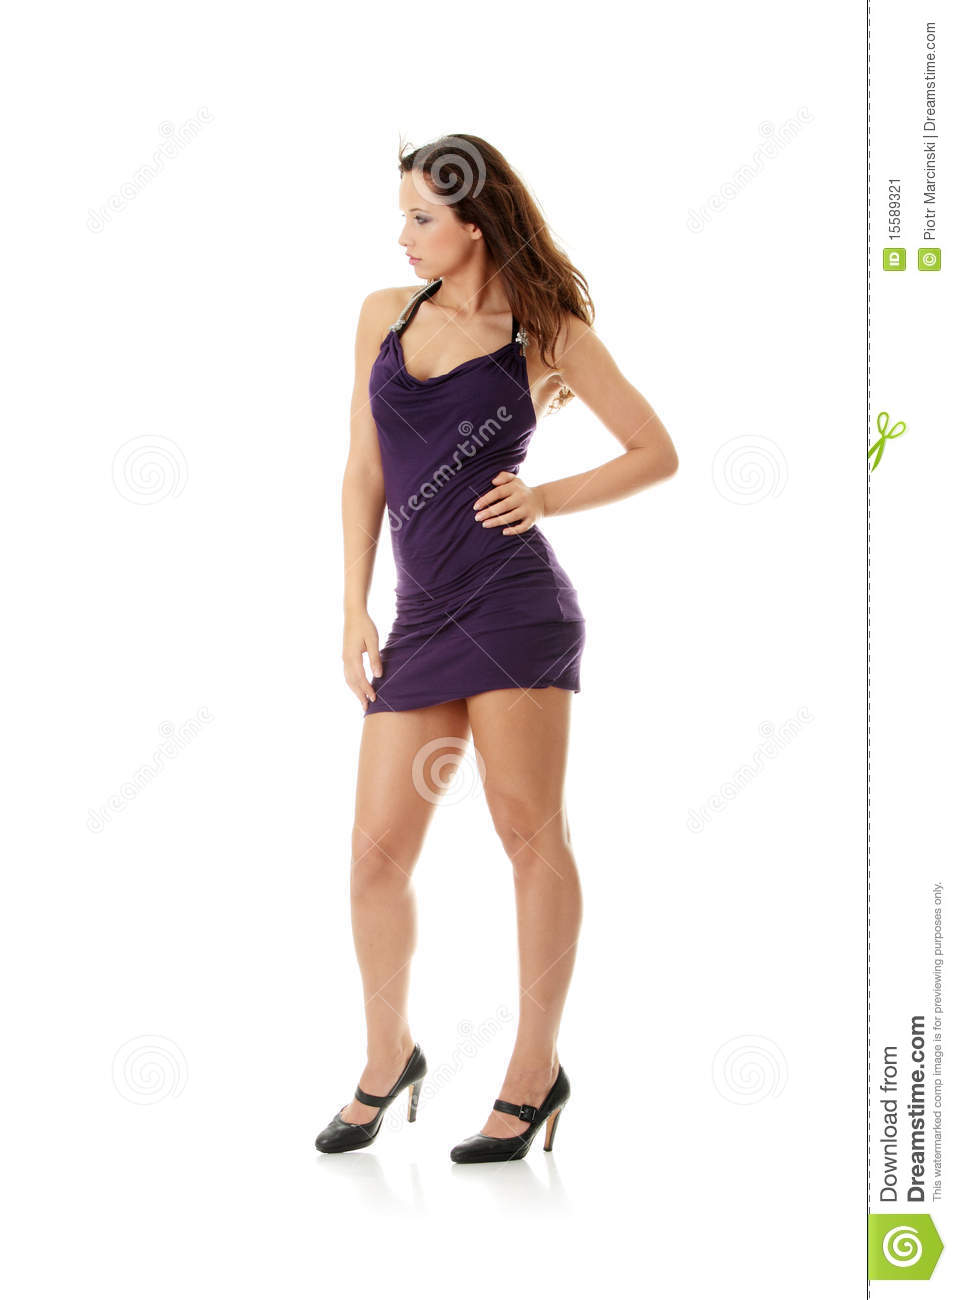 Young woman wearing a purple dress